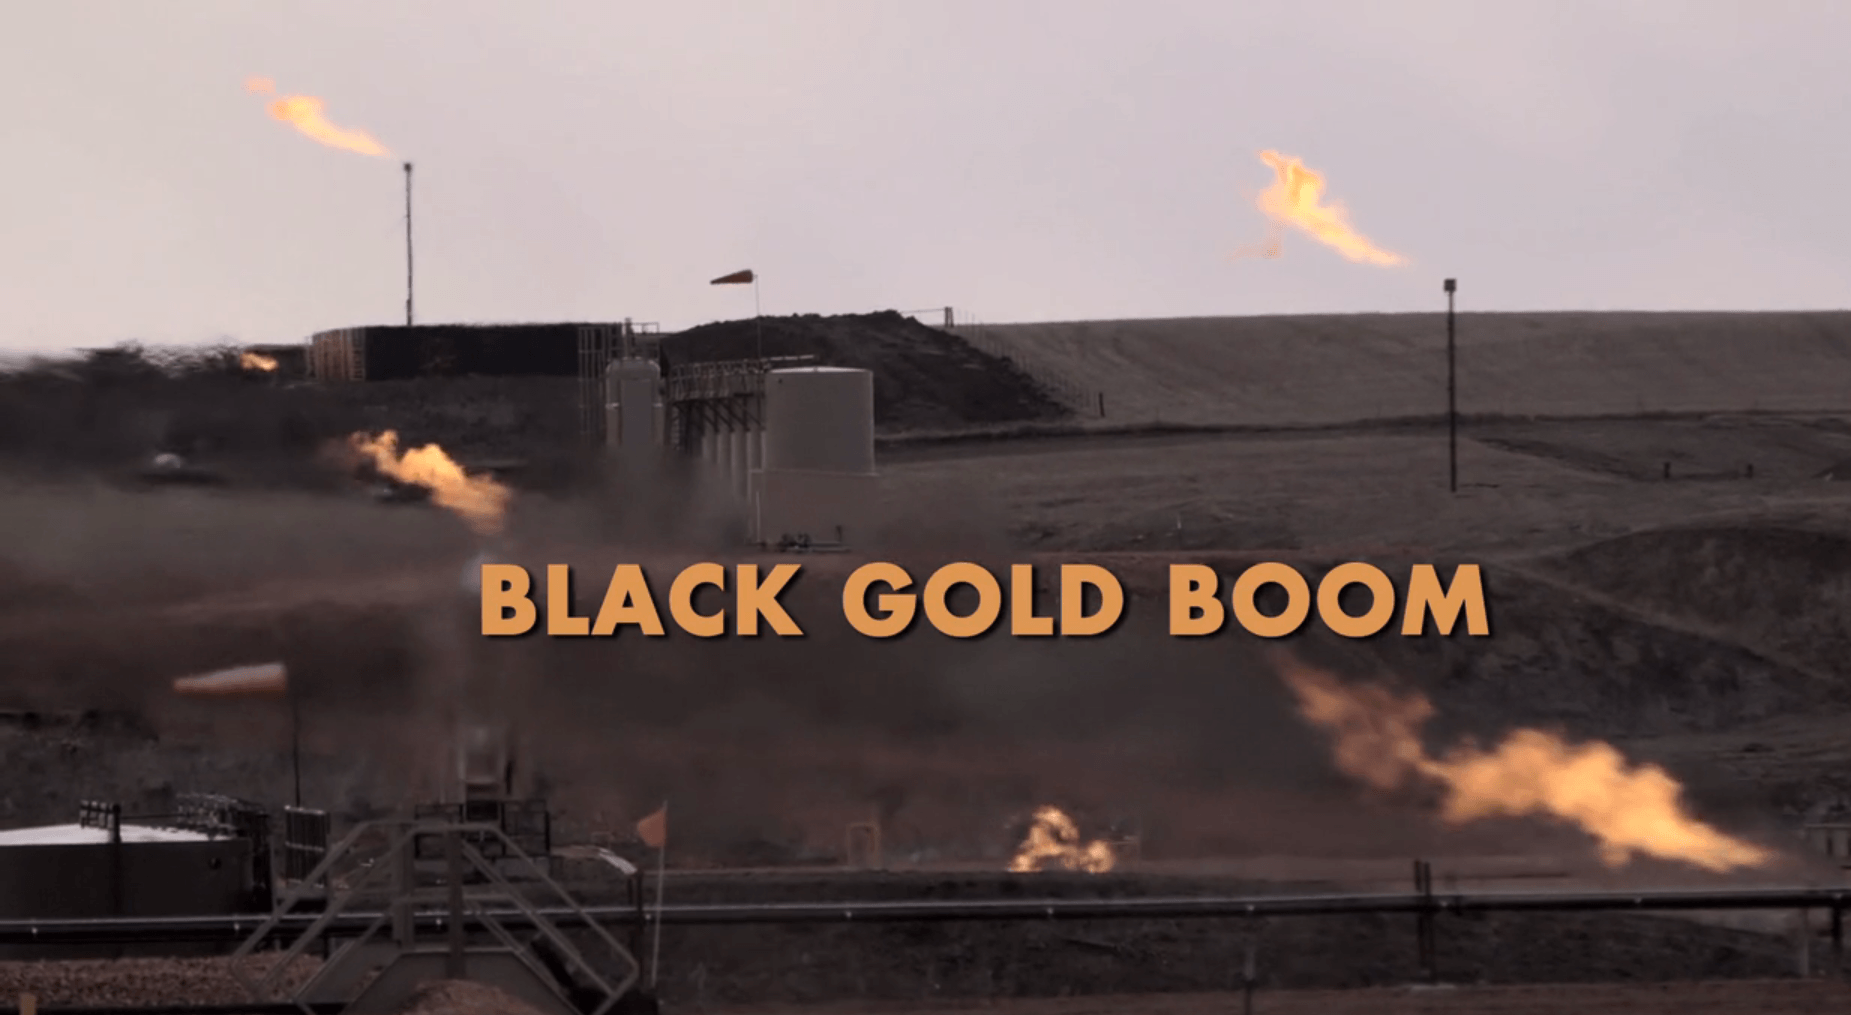 The 'Black Gold Boom' documentary